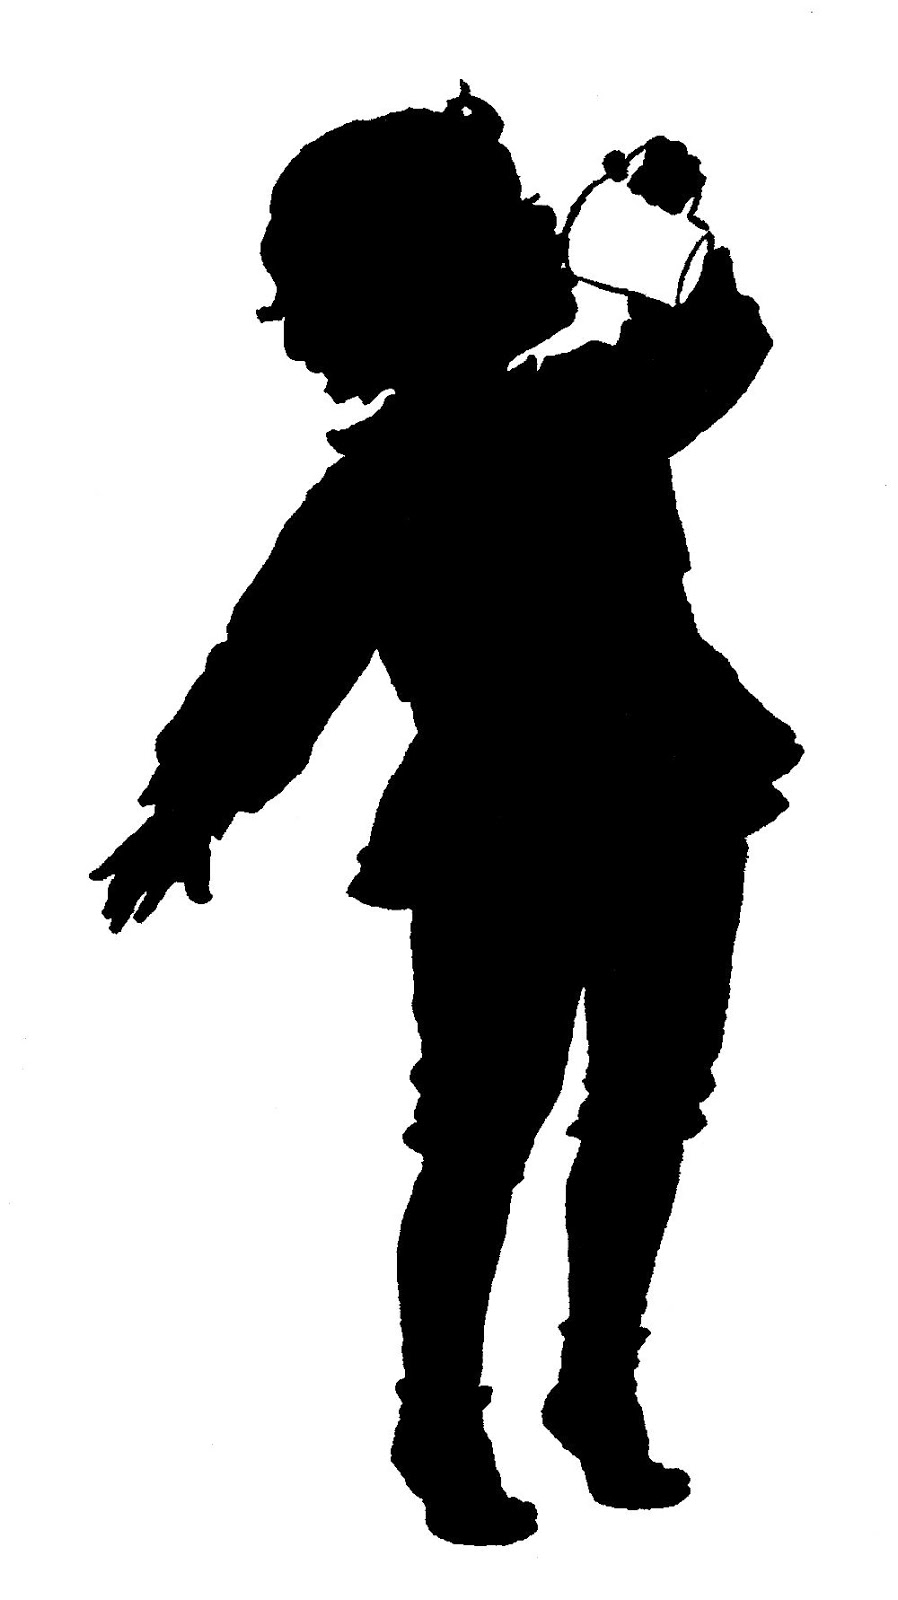 Drinking at getdrawings com. Alcohol clipart silhouette